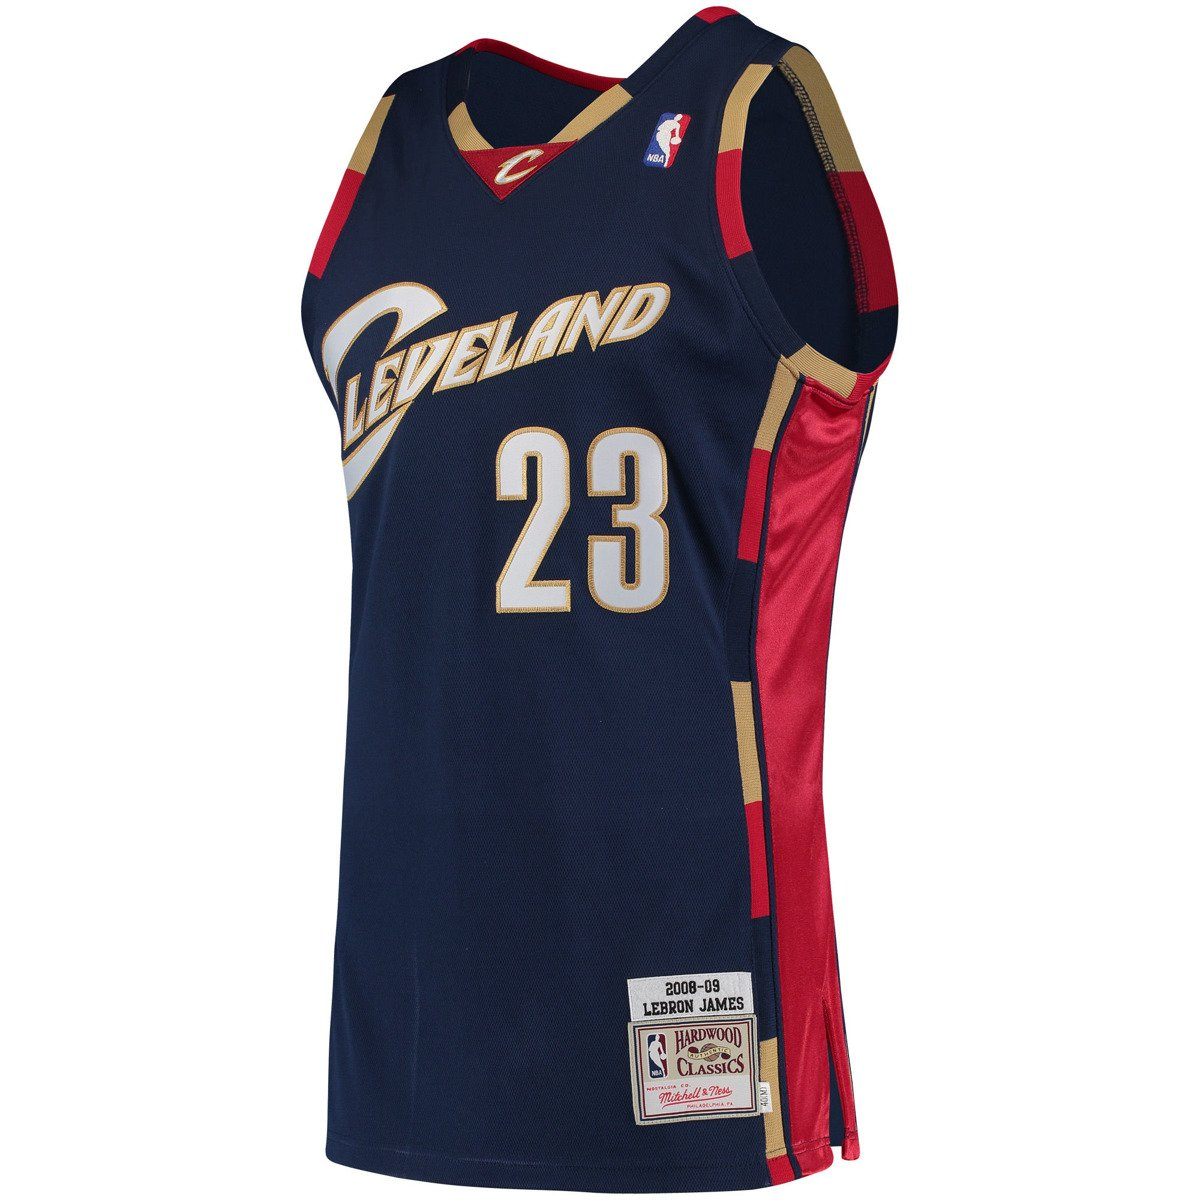 80cc922e2b2 ... authentic mitchell ness lebron james 2008 09 nba hardwood classics  authentic cleveland cavaliers jersey 7b5bb 7d394